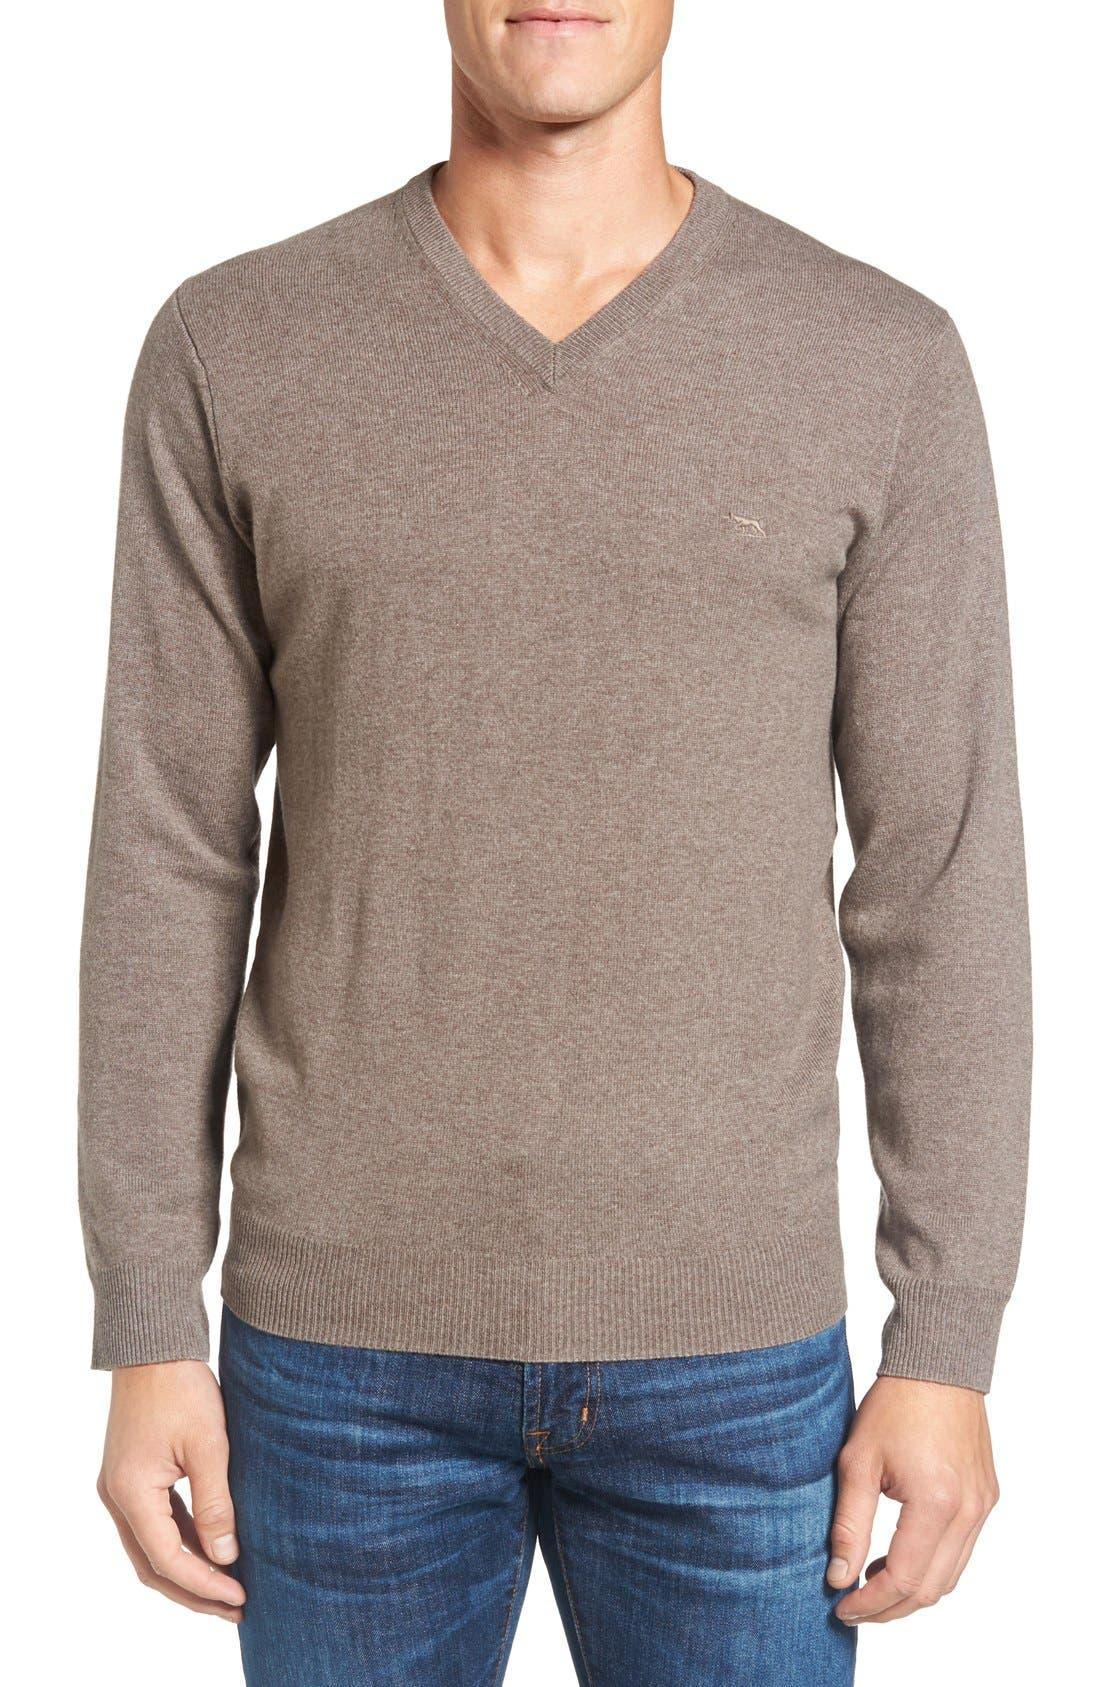 Alternate Image 1 Selected - Rodd & Gunn 'Inchbonnie' Wool & Cashmere V-Neck Sweater